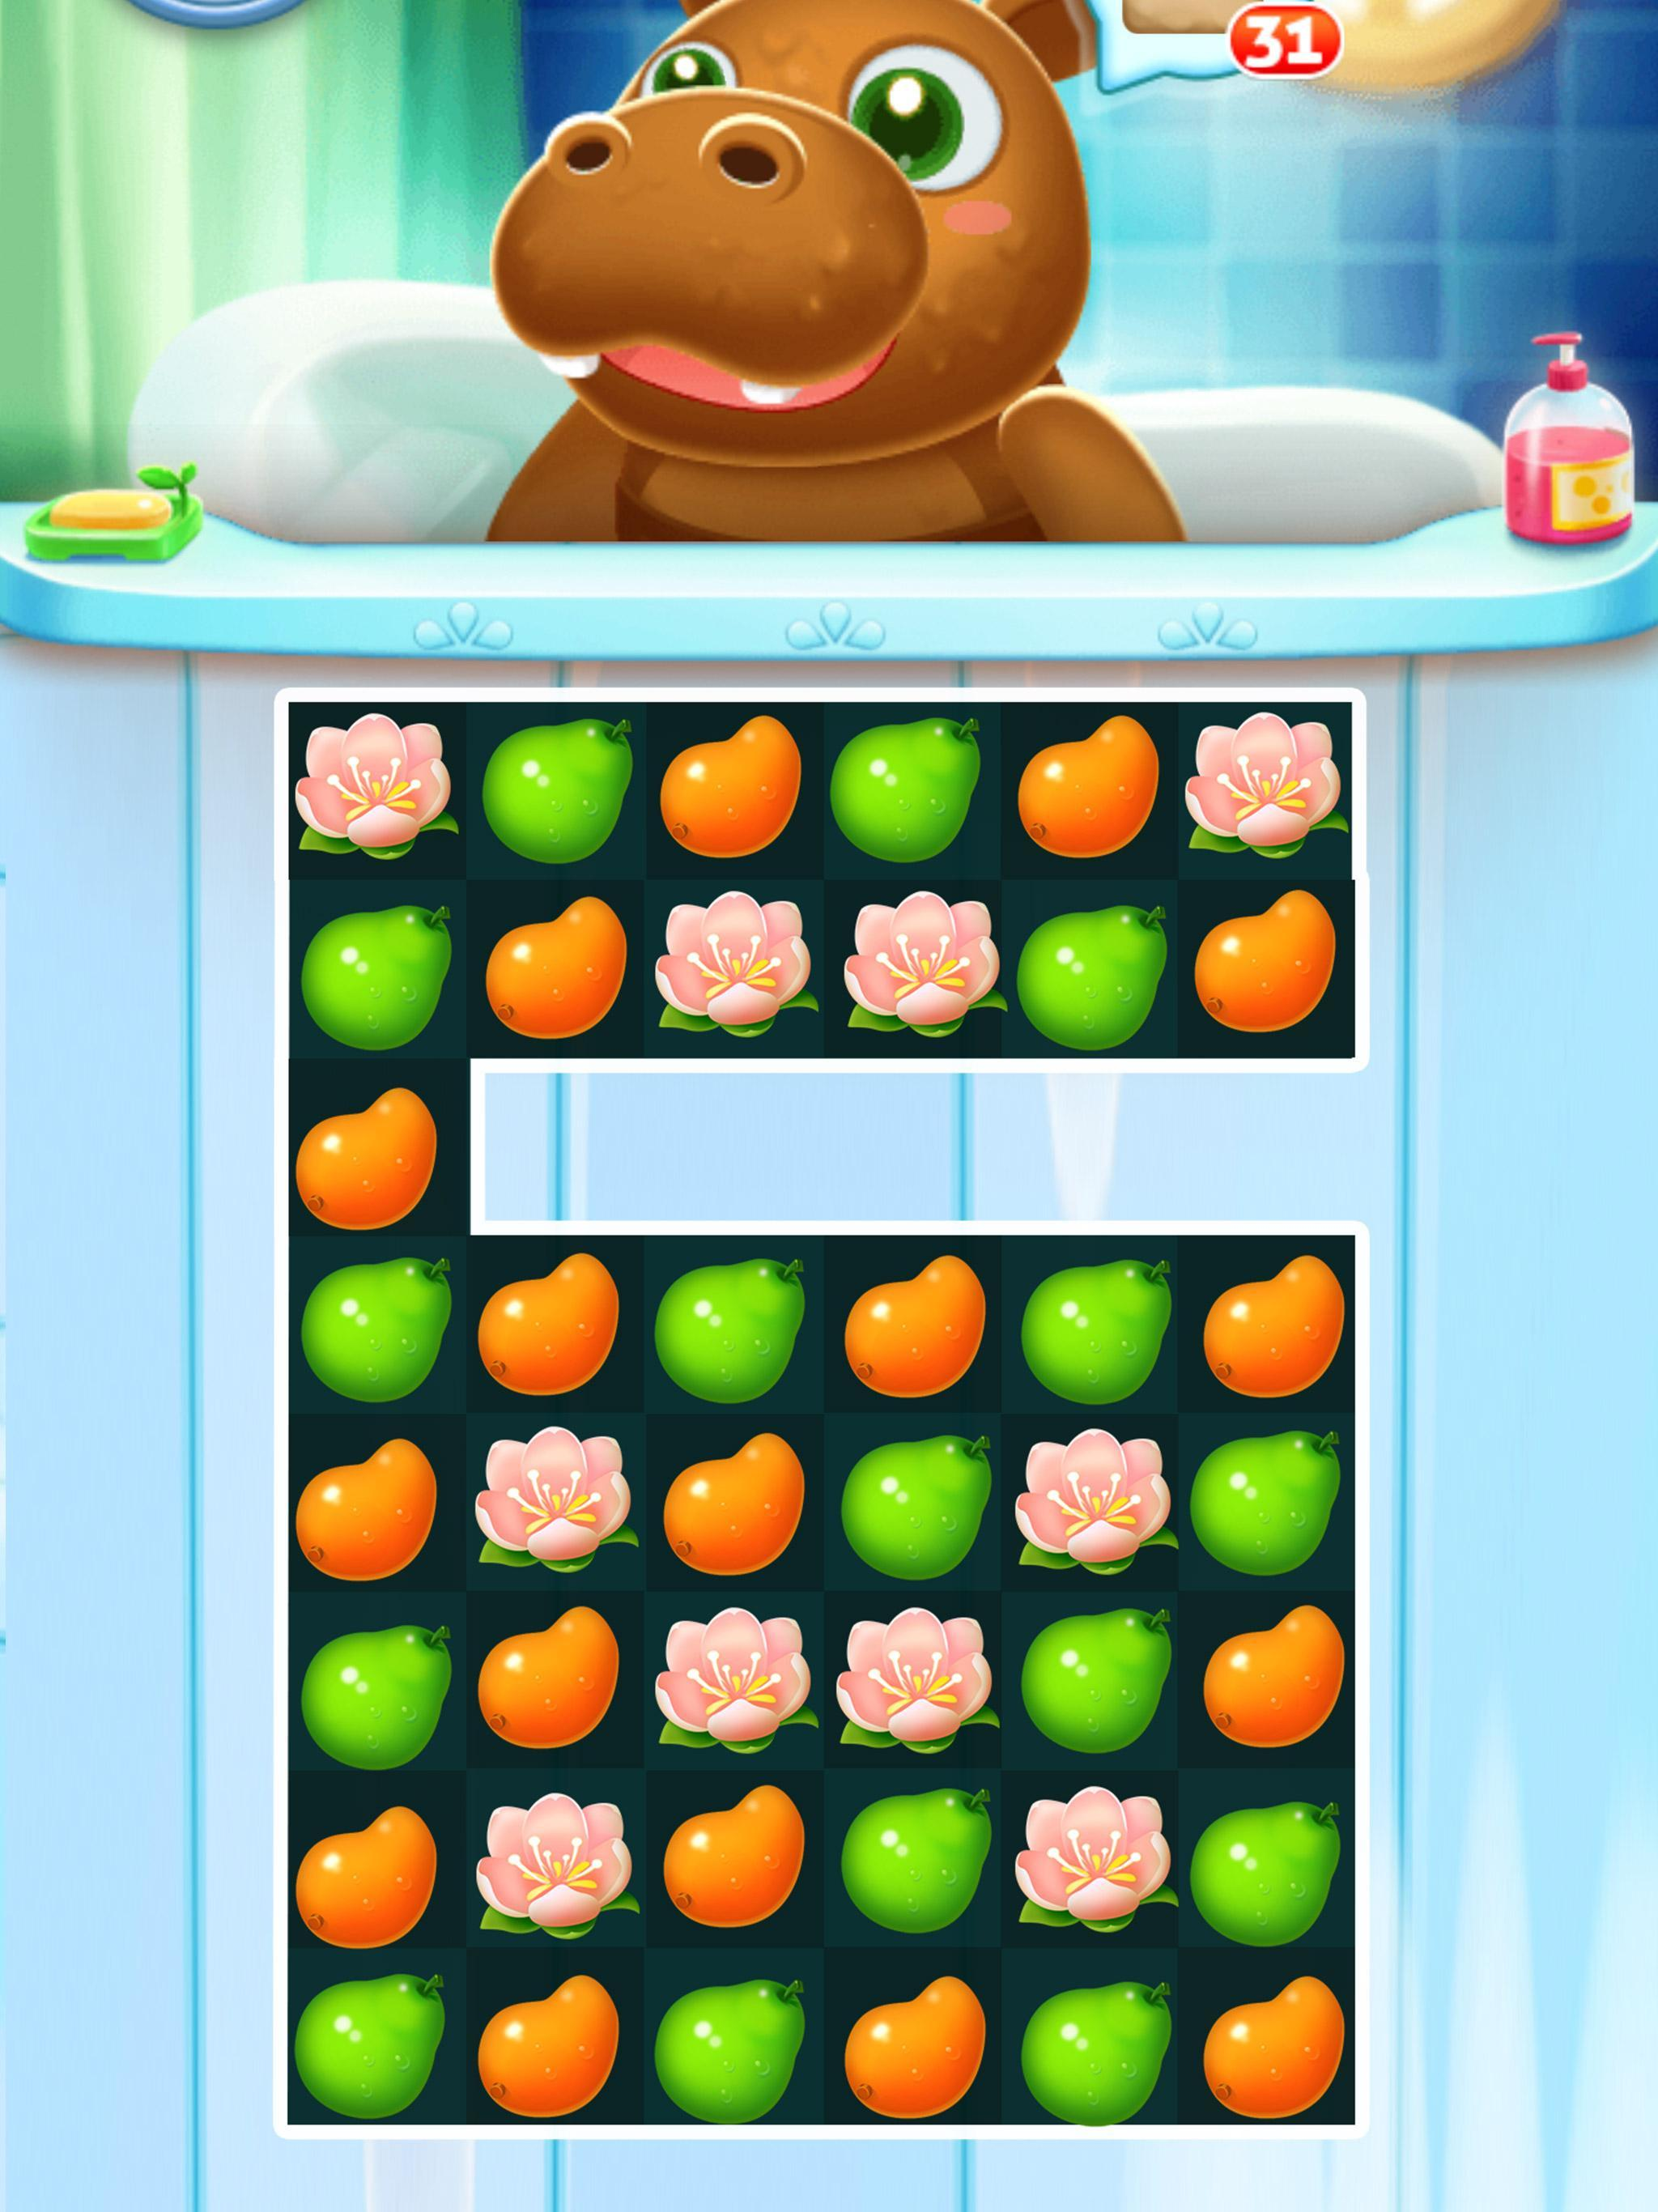 Fruit Fever-best match3 puzzle game 1.0.1 Screenshot 3